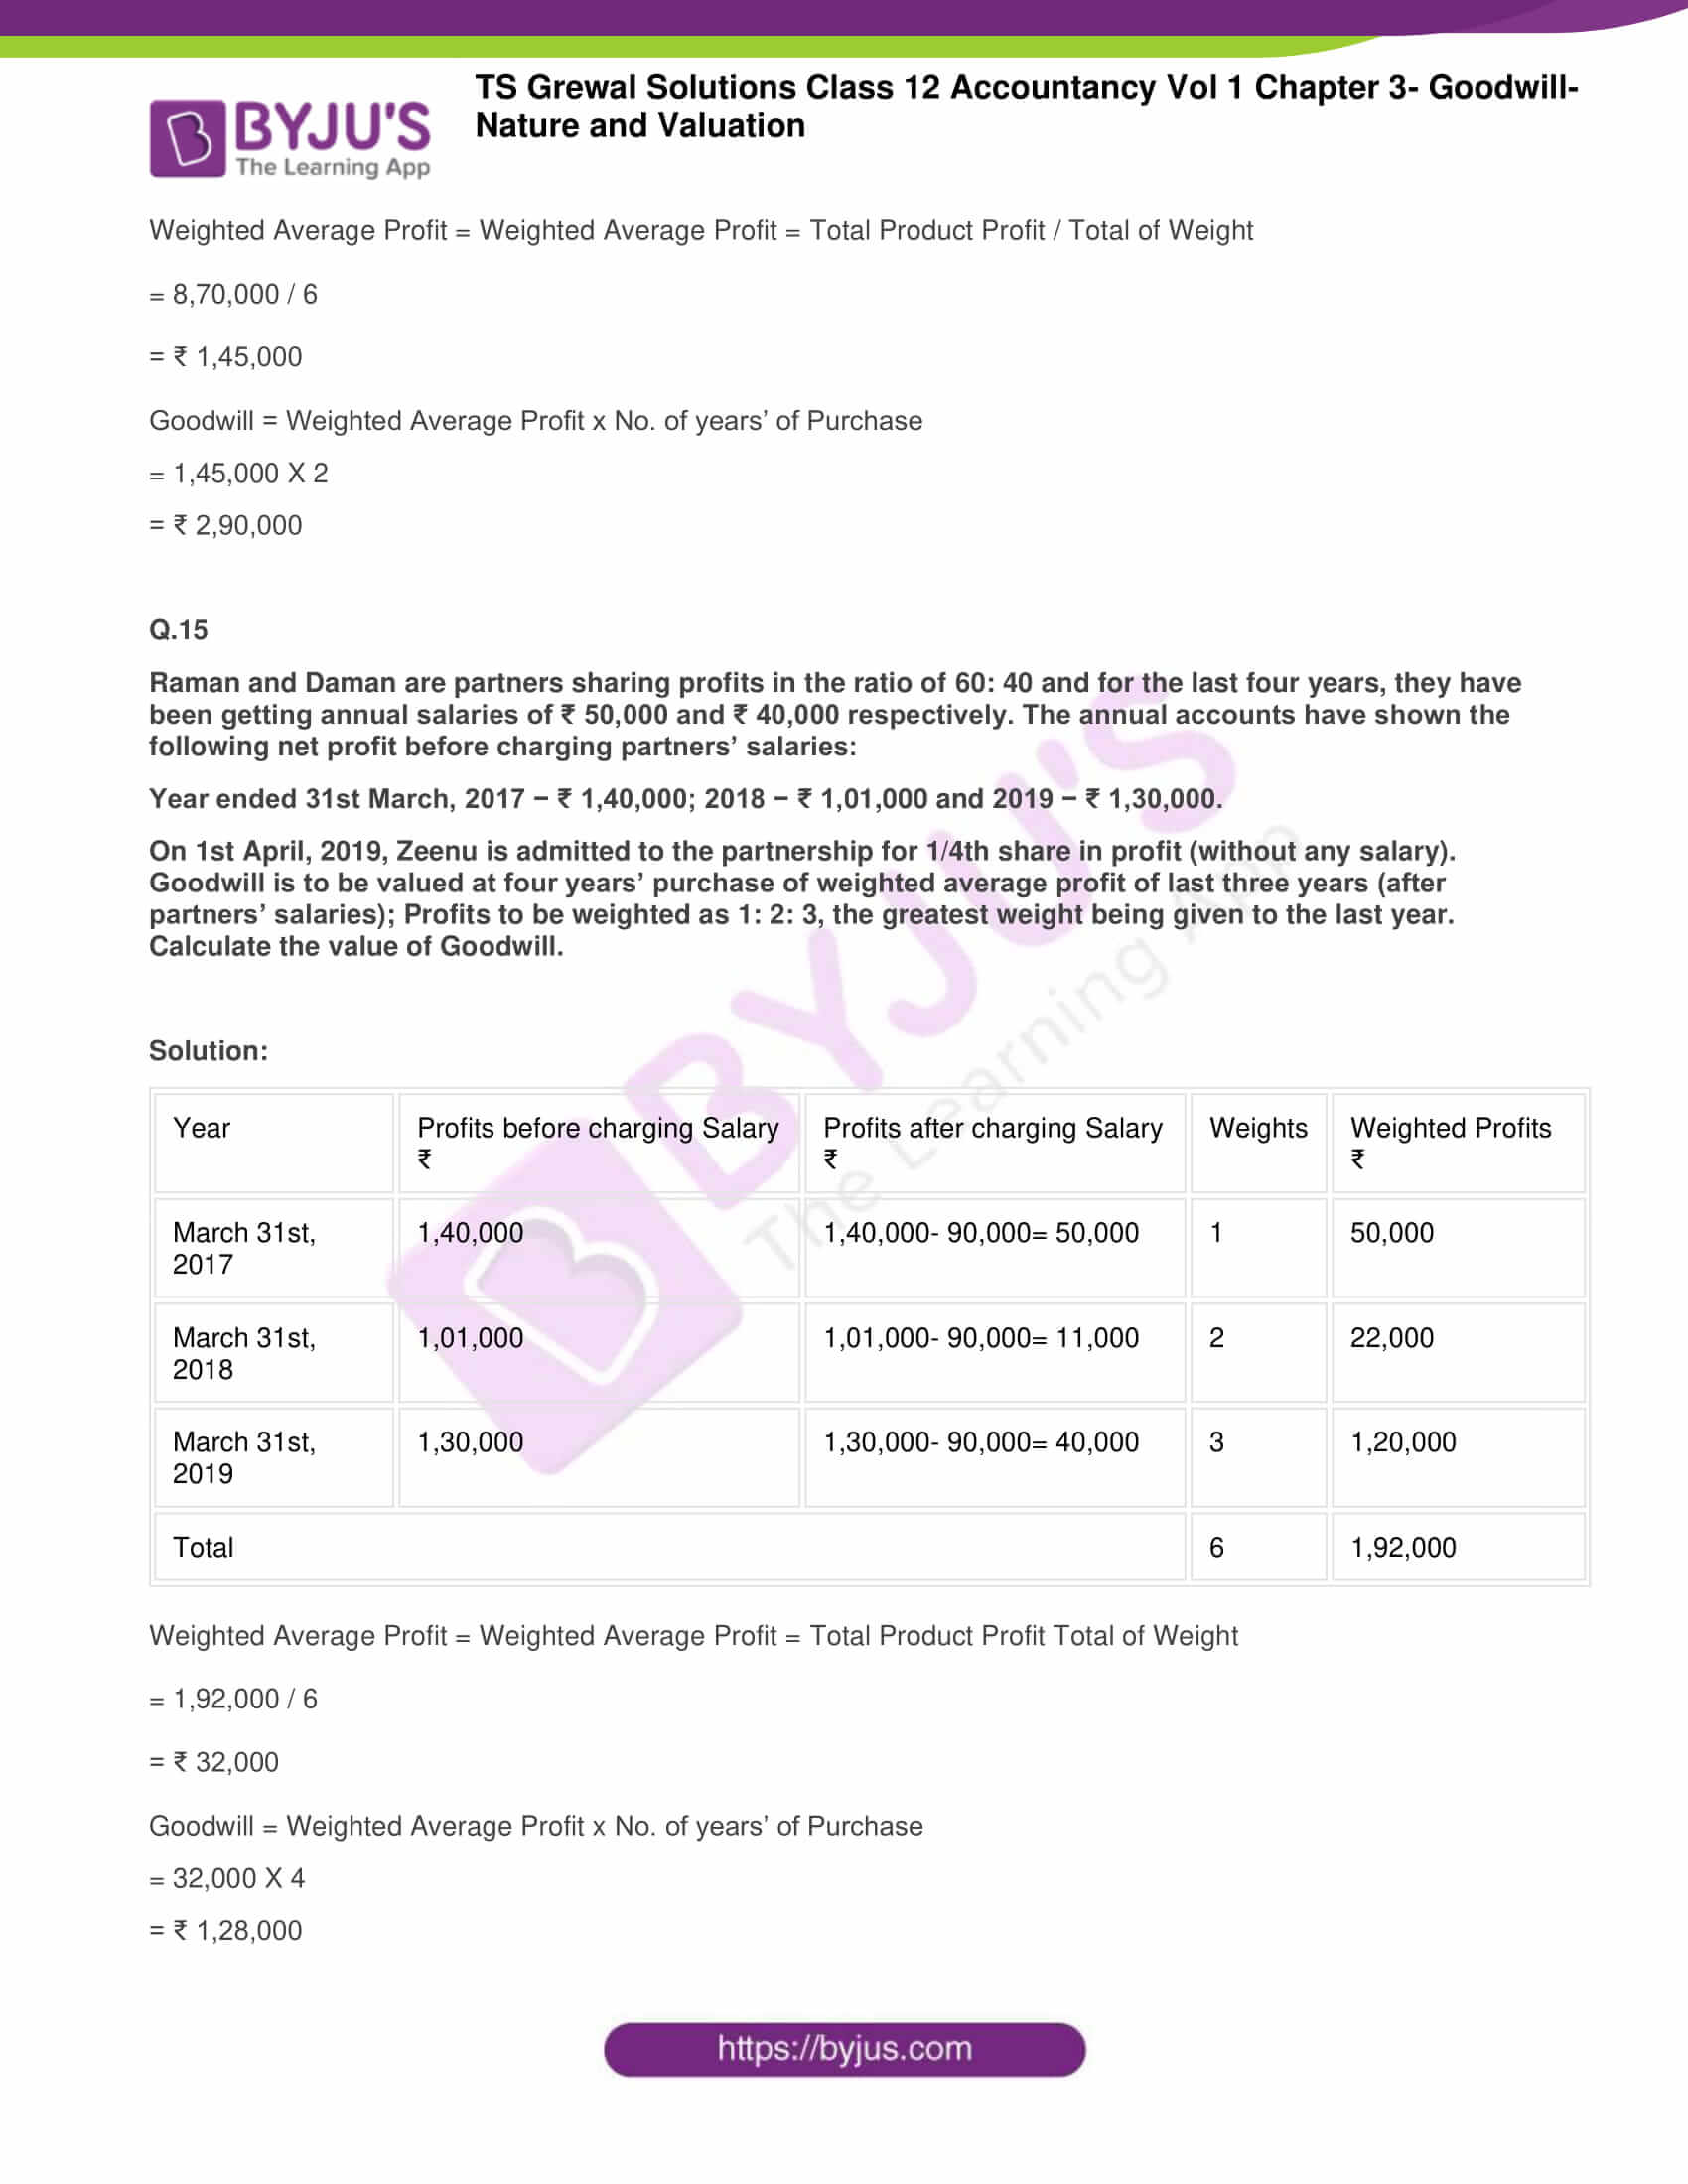 ts grewal solutions for class 12 accountancy vol 1 chapter 313